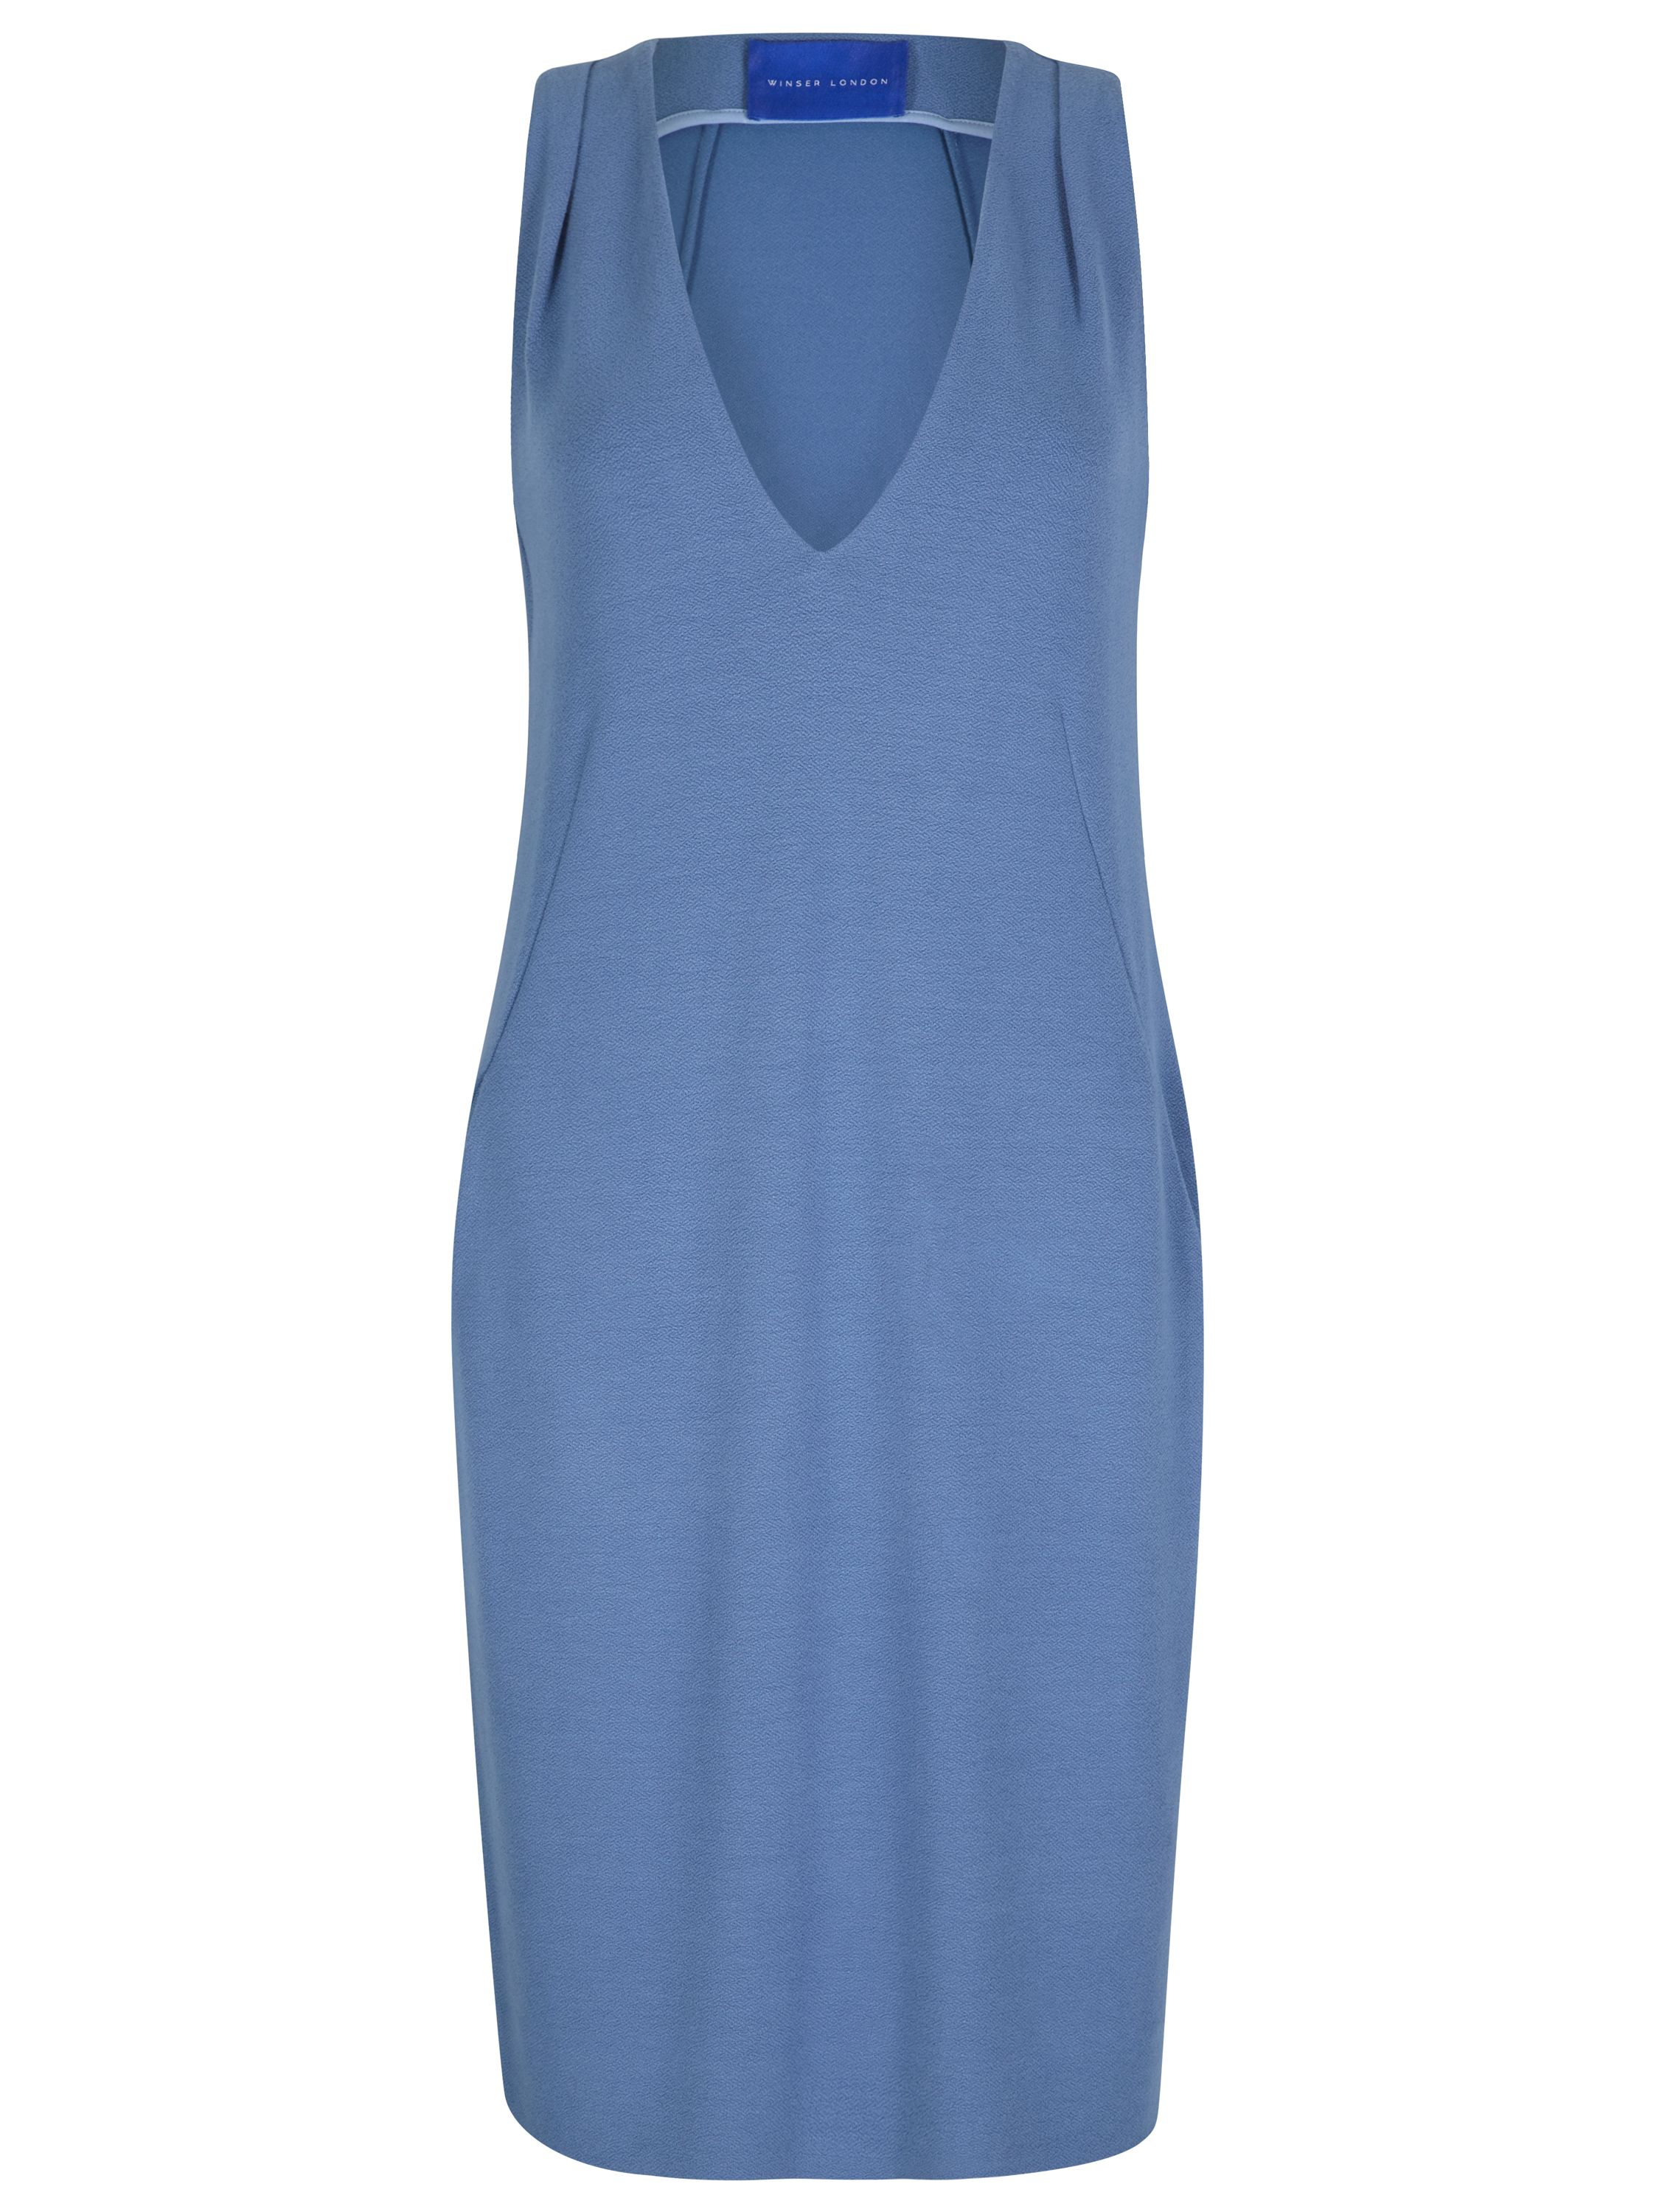 Winser London Crepe Jersey Shift Dress, Blue